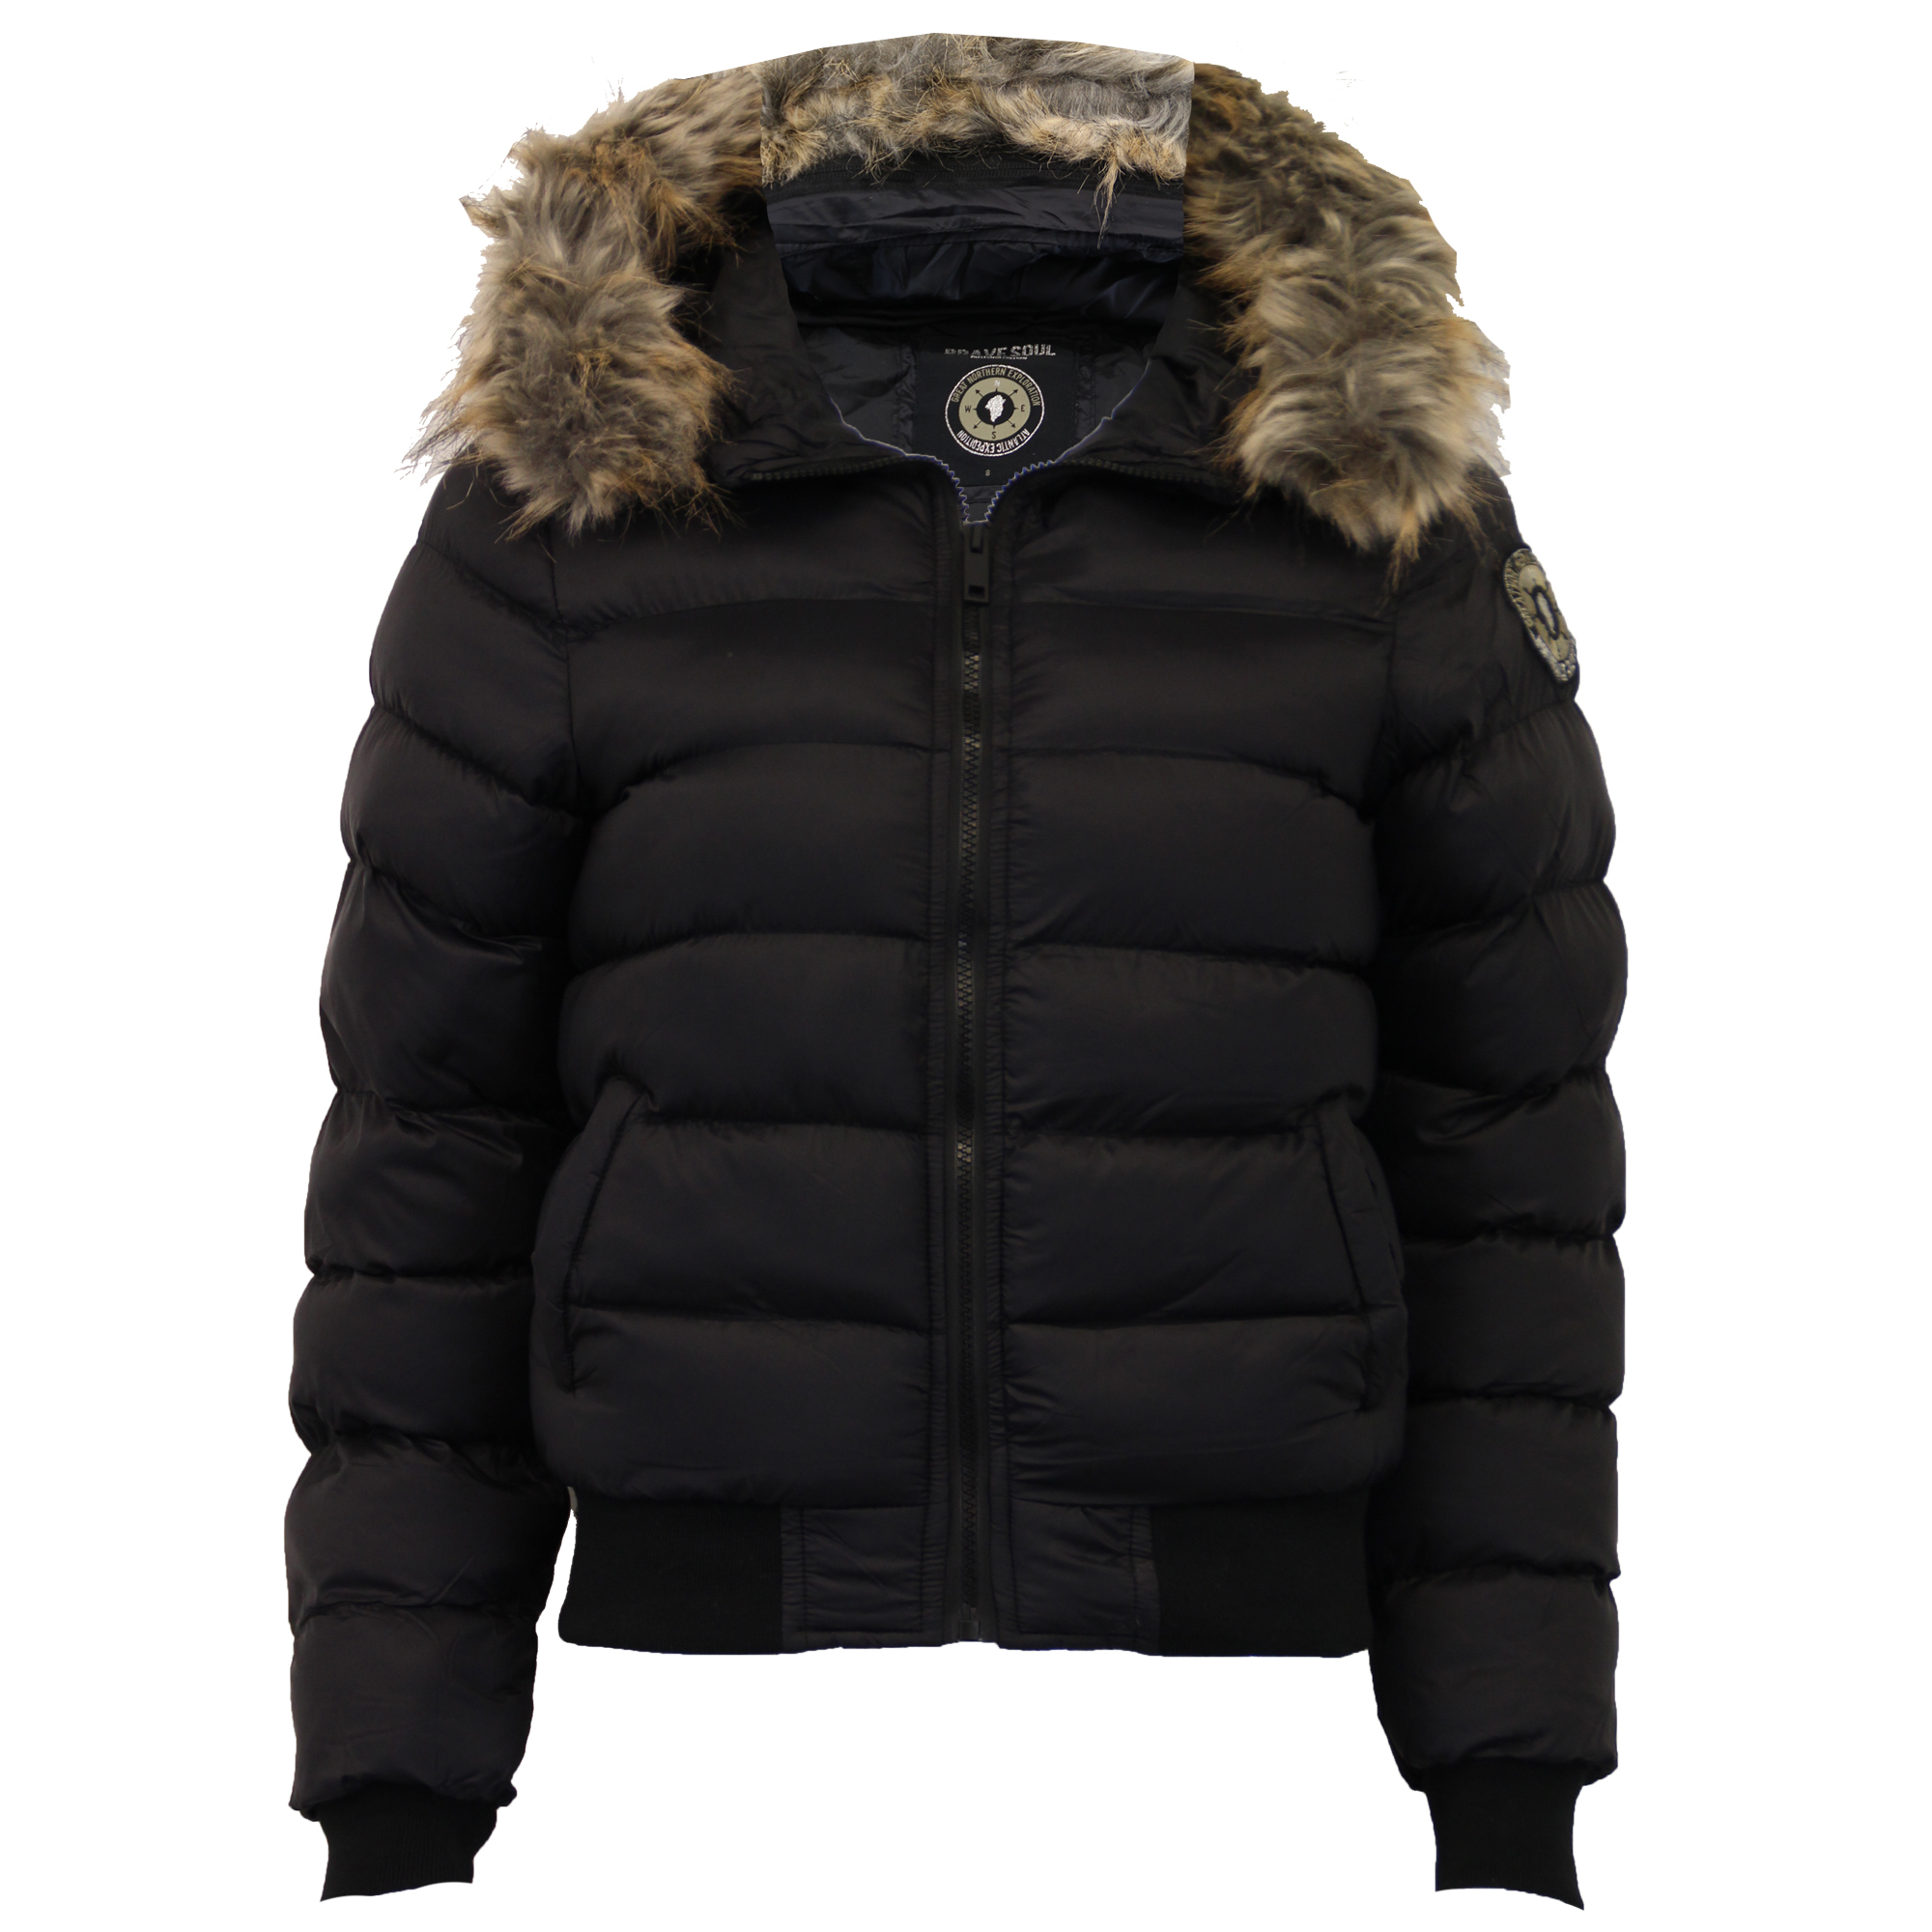 6800fcf236f Details about Ladies Short Bubble Jacket Brave Soul Womens Coat Padded  Bomber Hoodie Fur New